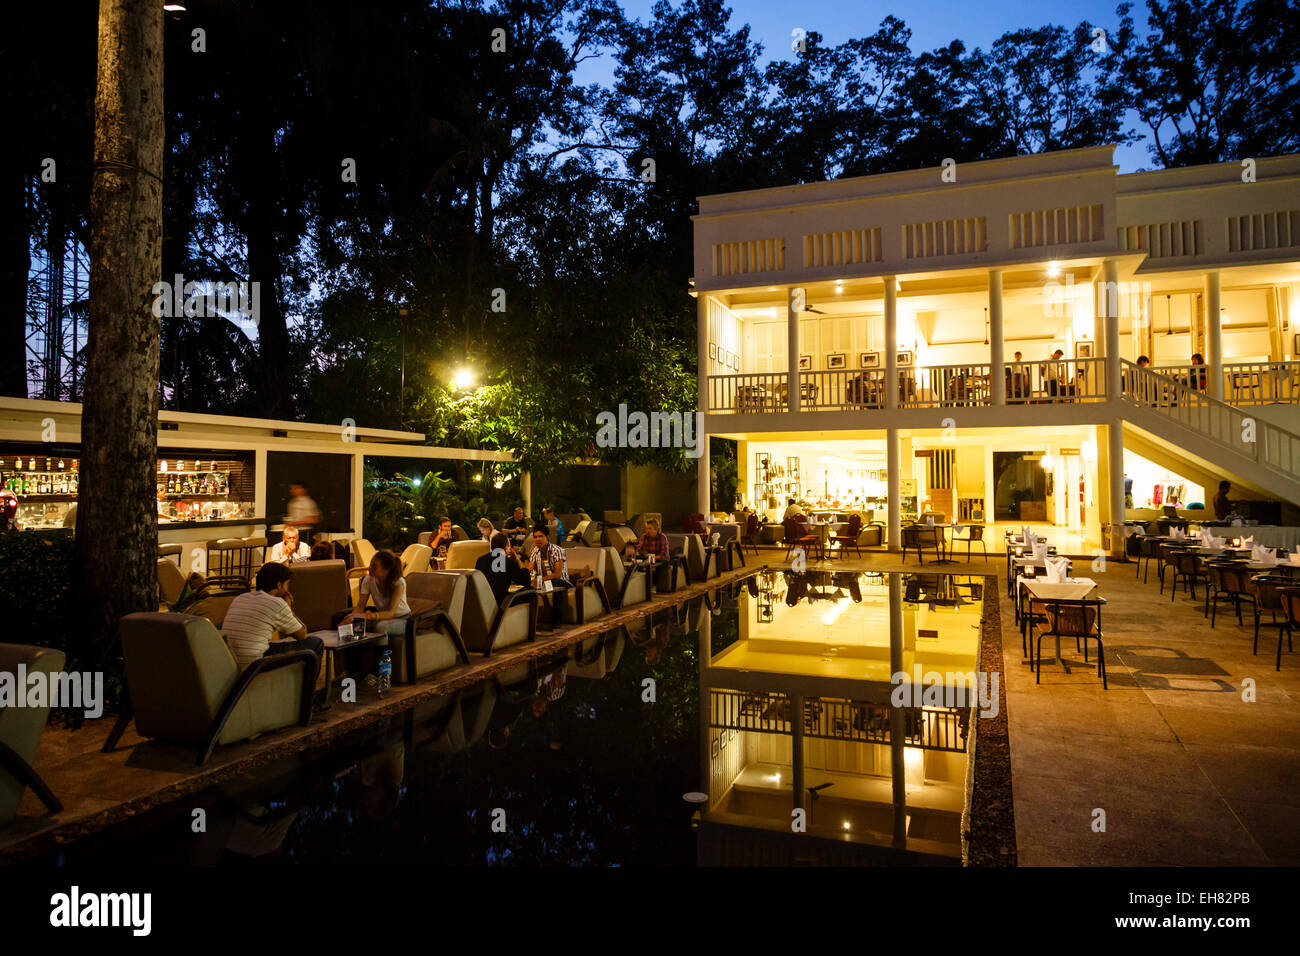 The FCC Angkor, Foreign Correspondents Club, hotel and restaurant, Siem Reap, Cambodia, Indochina, Southeast Asia, - Stock Image